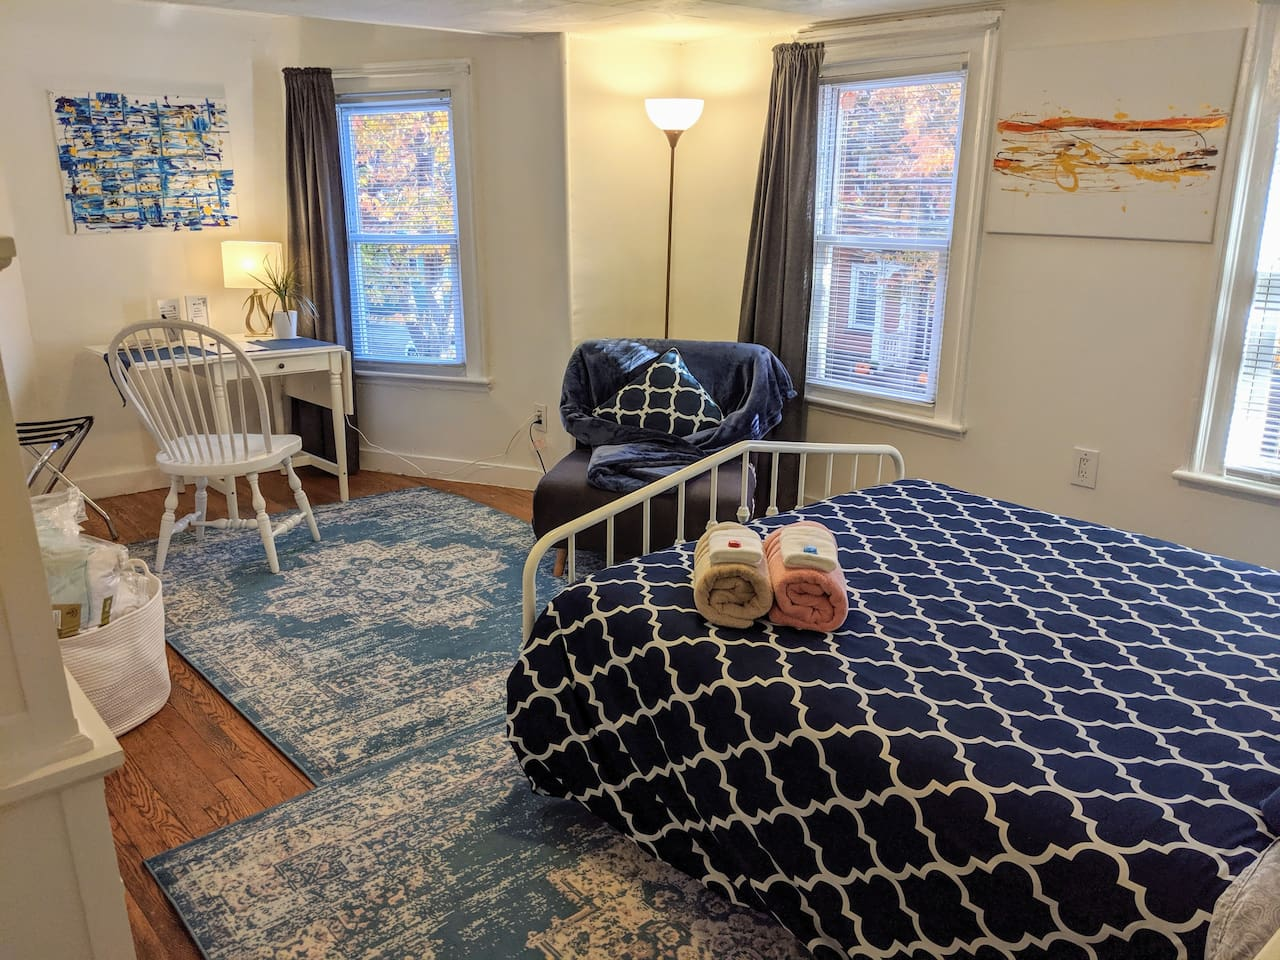 Spacious room with queen-sized bed, convertible lounge chair that could be opened to stretch out your legs or flat to be an additional single sleeping area, drop leaf desk, dresser, closet w/ hangers, bedside tables with reading lights on both sides.